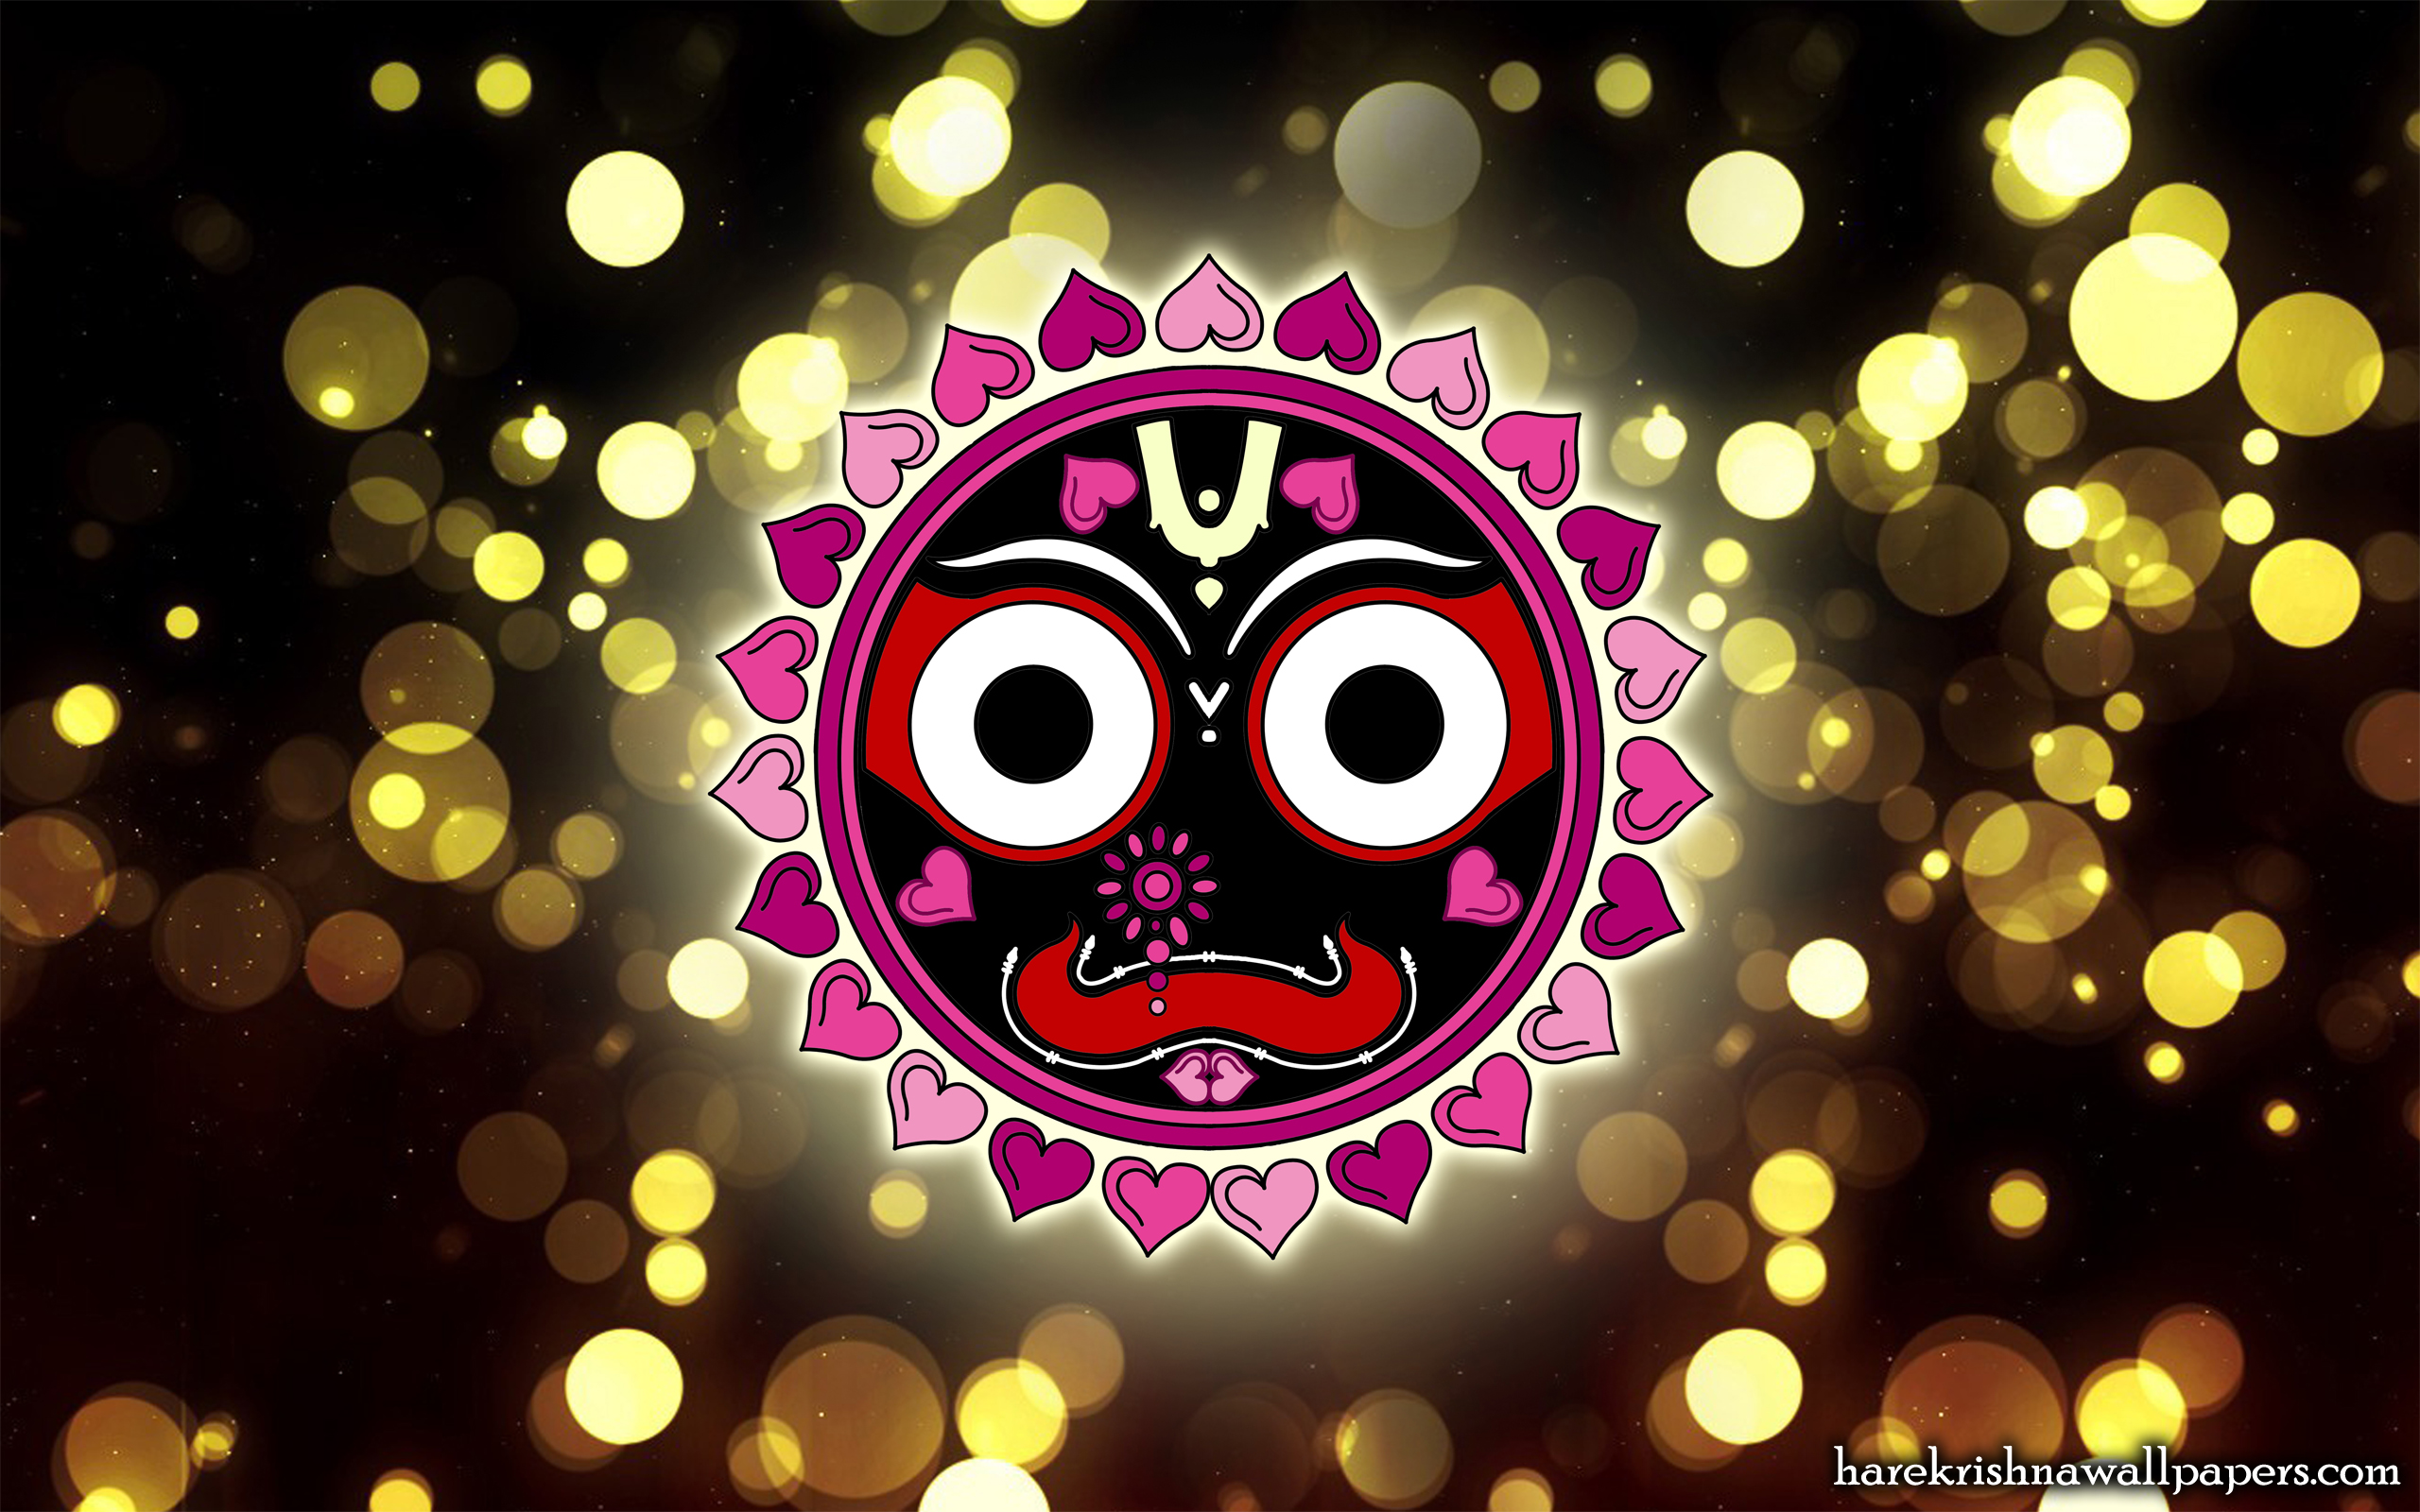 Jai Jagannath Wallpaper (049) Size 2560x1600 Download